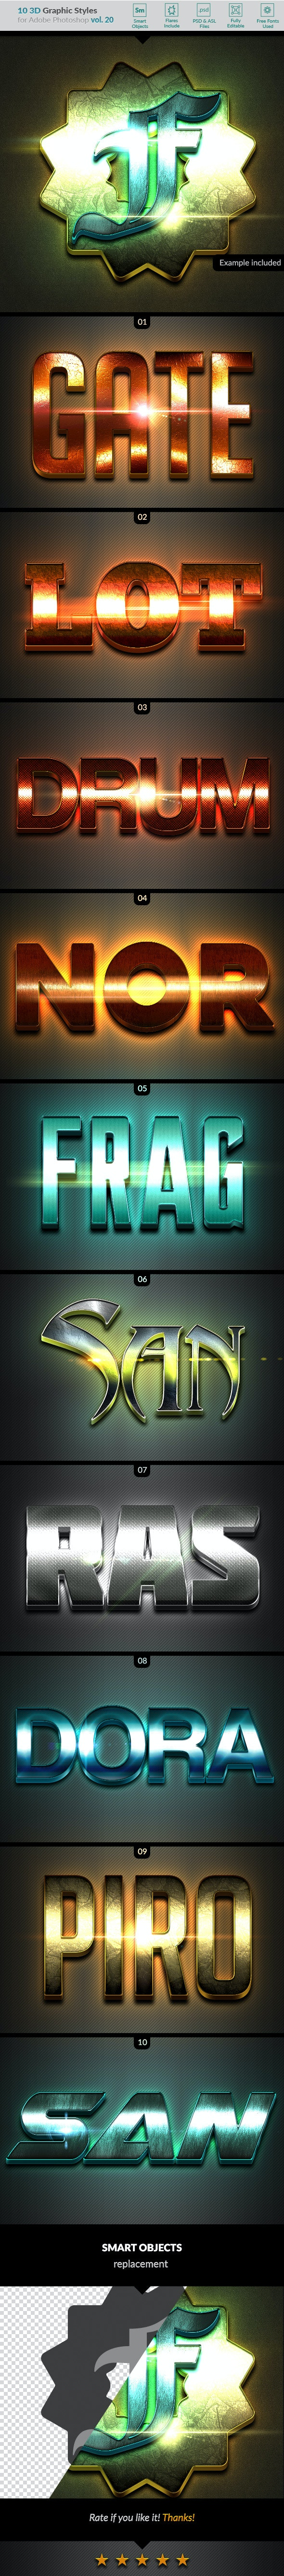 10 3D Styles vol. 20 - Text Effects Styles